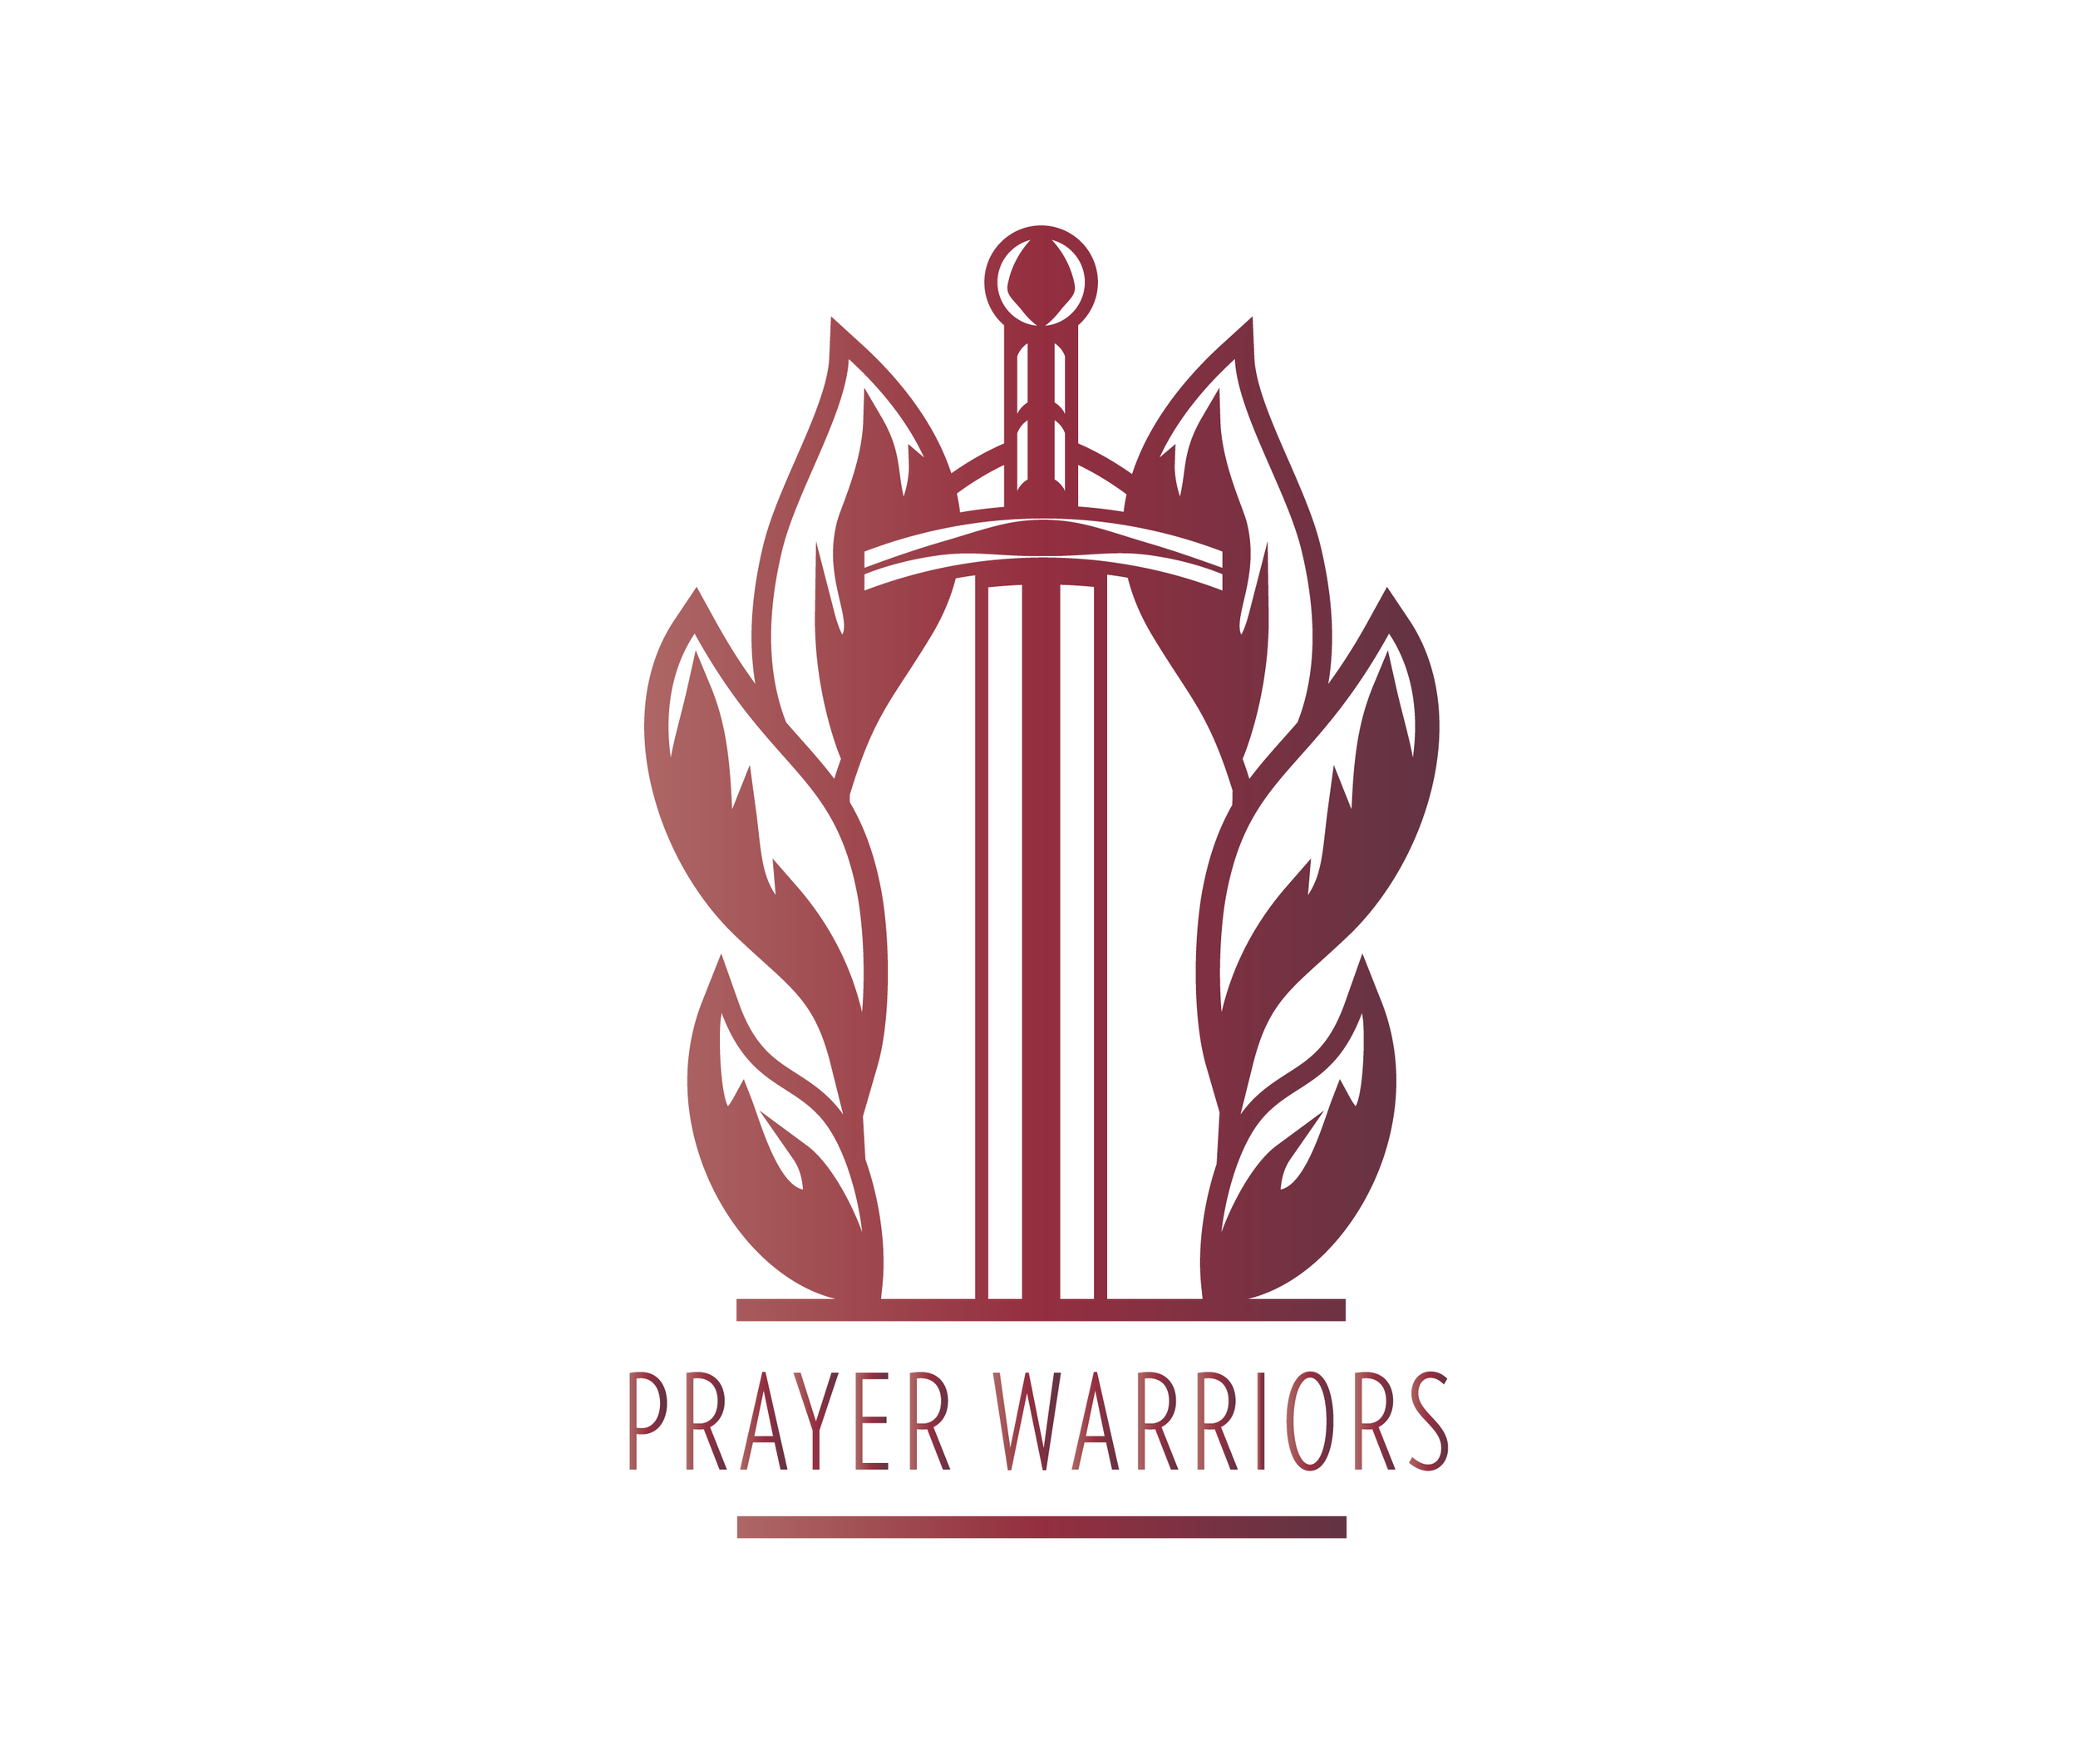 PrayerWarriors_Colors-04.png